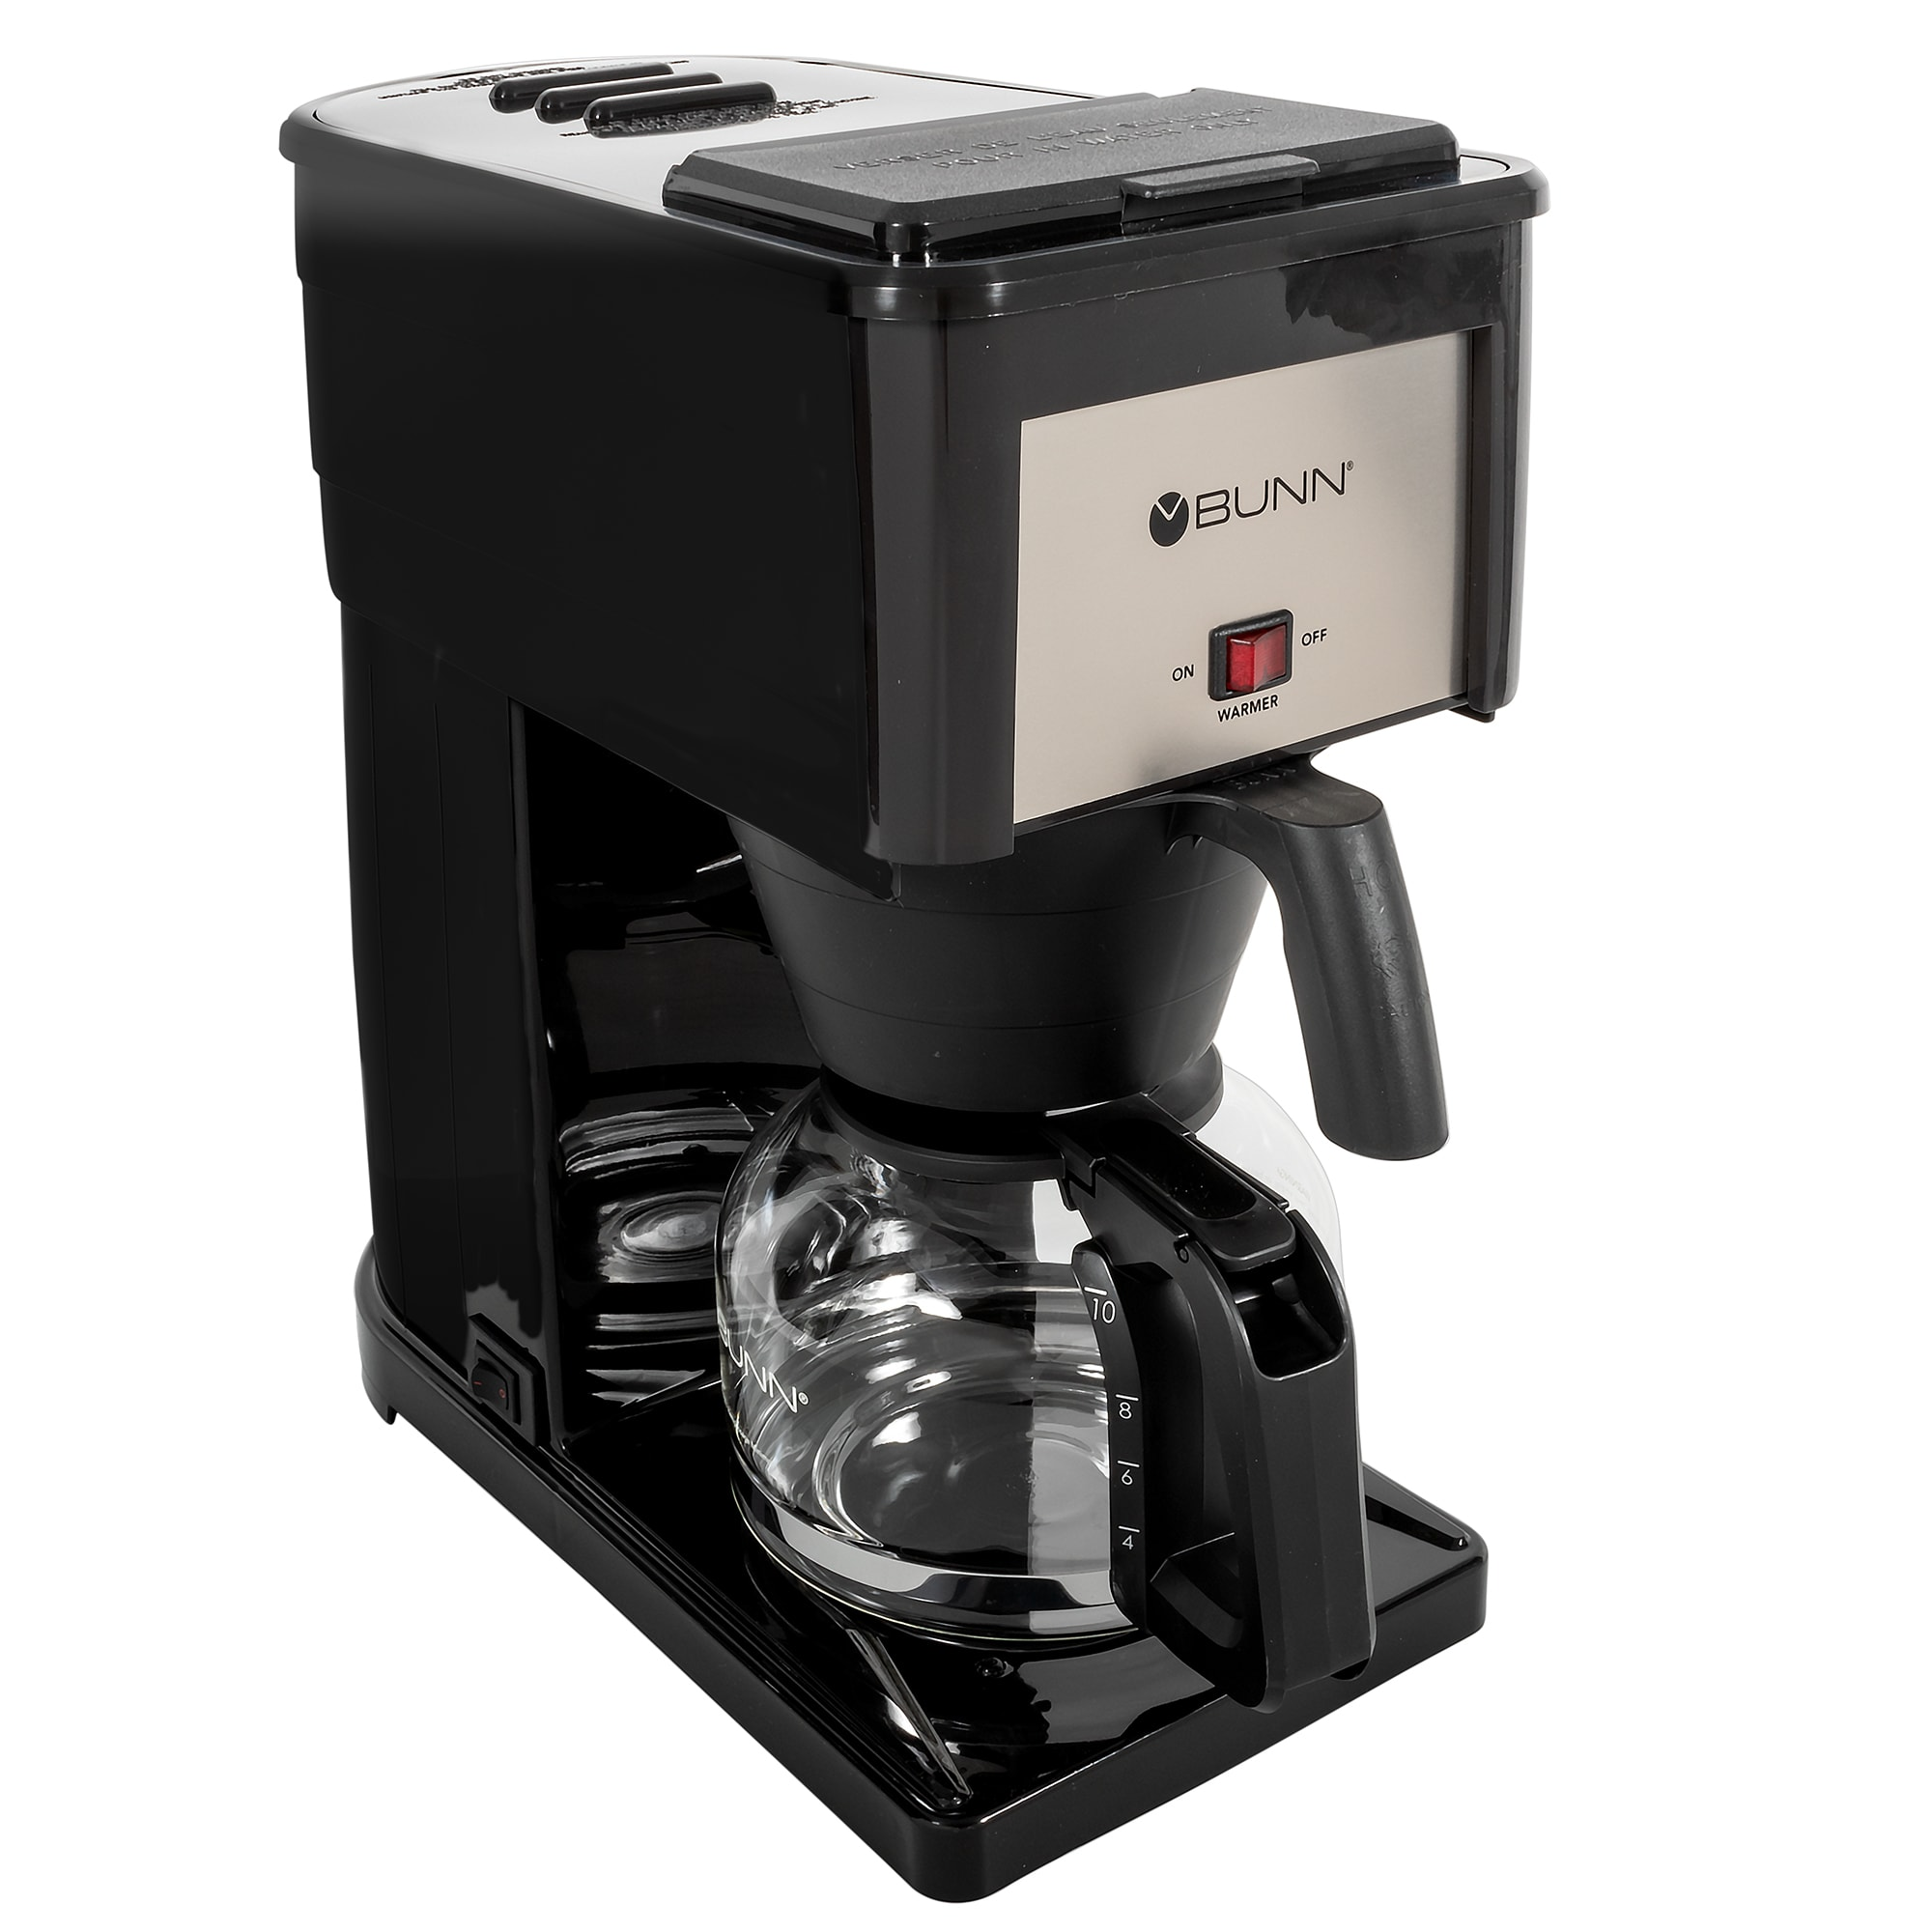 BUNN Home 38300.0064 GR Velocity Brew 10 cup Drip Coffee Maker, Black